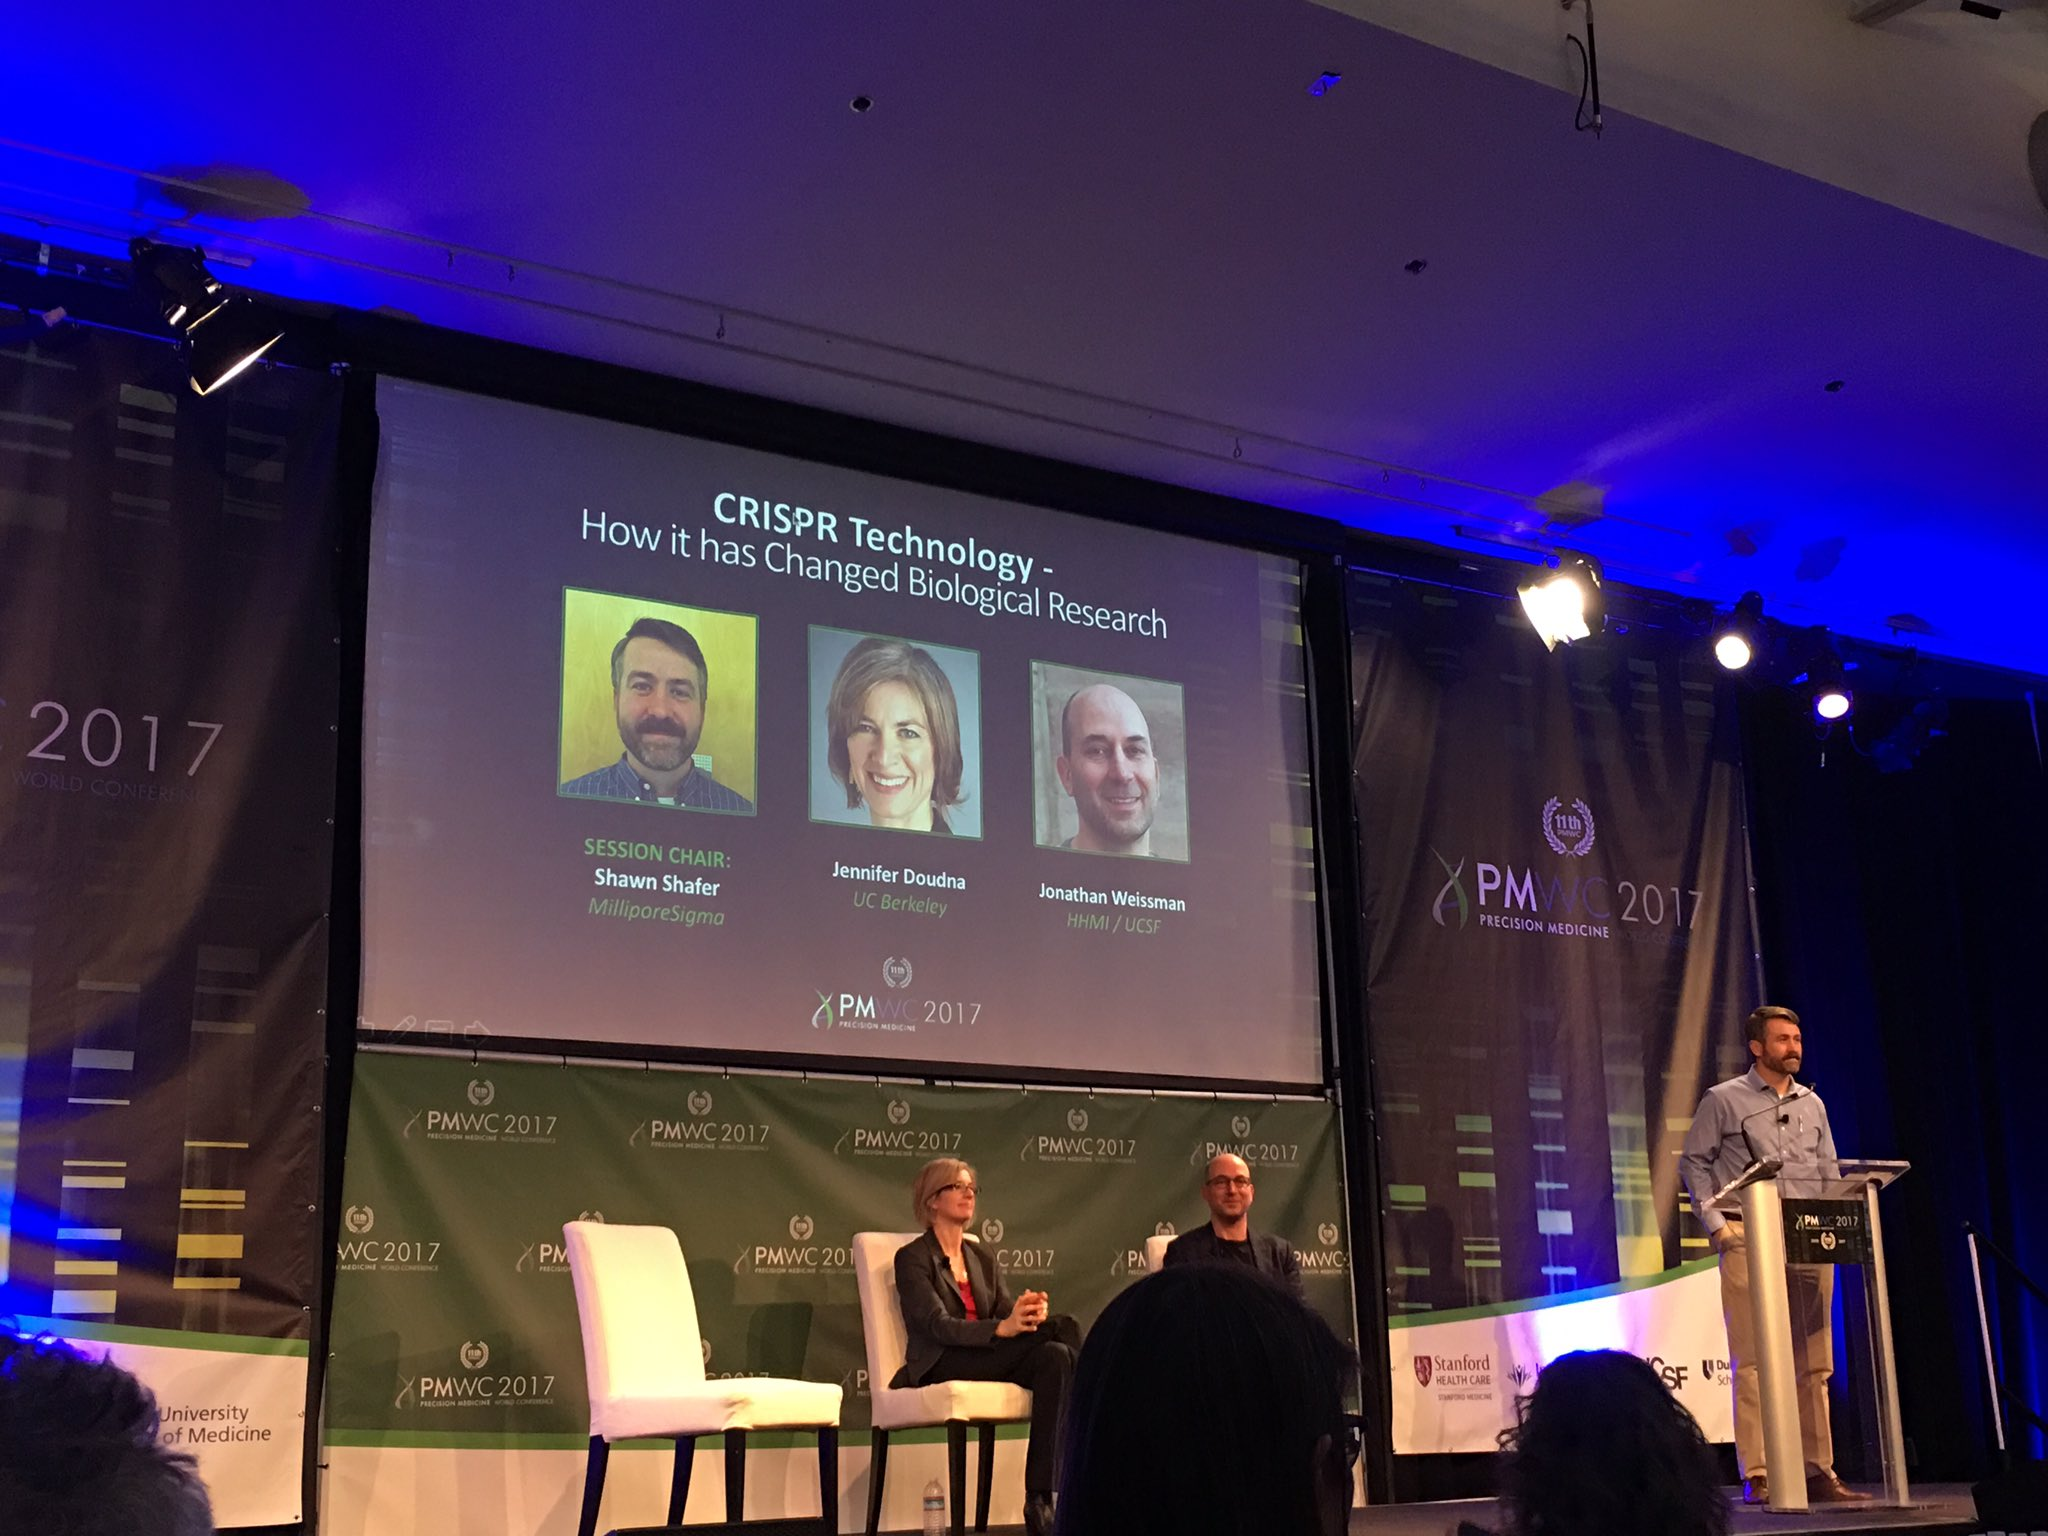 How has #CRISPR changed biological research? Updates and visions for future #PMWC17 https://t.co/0aGVEInd2S